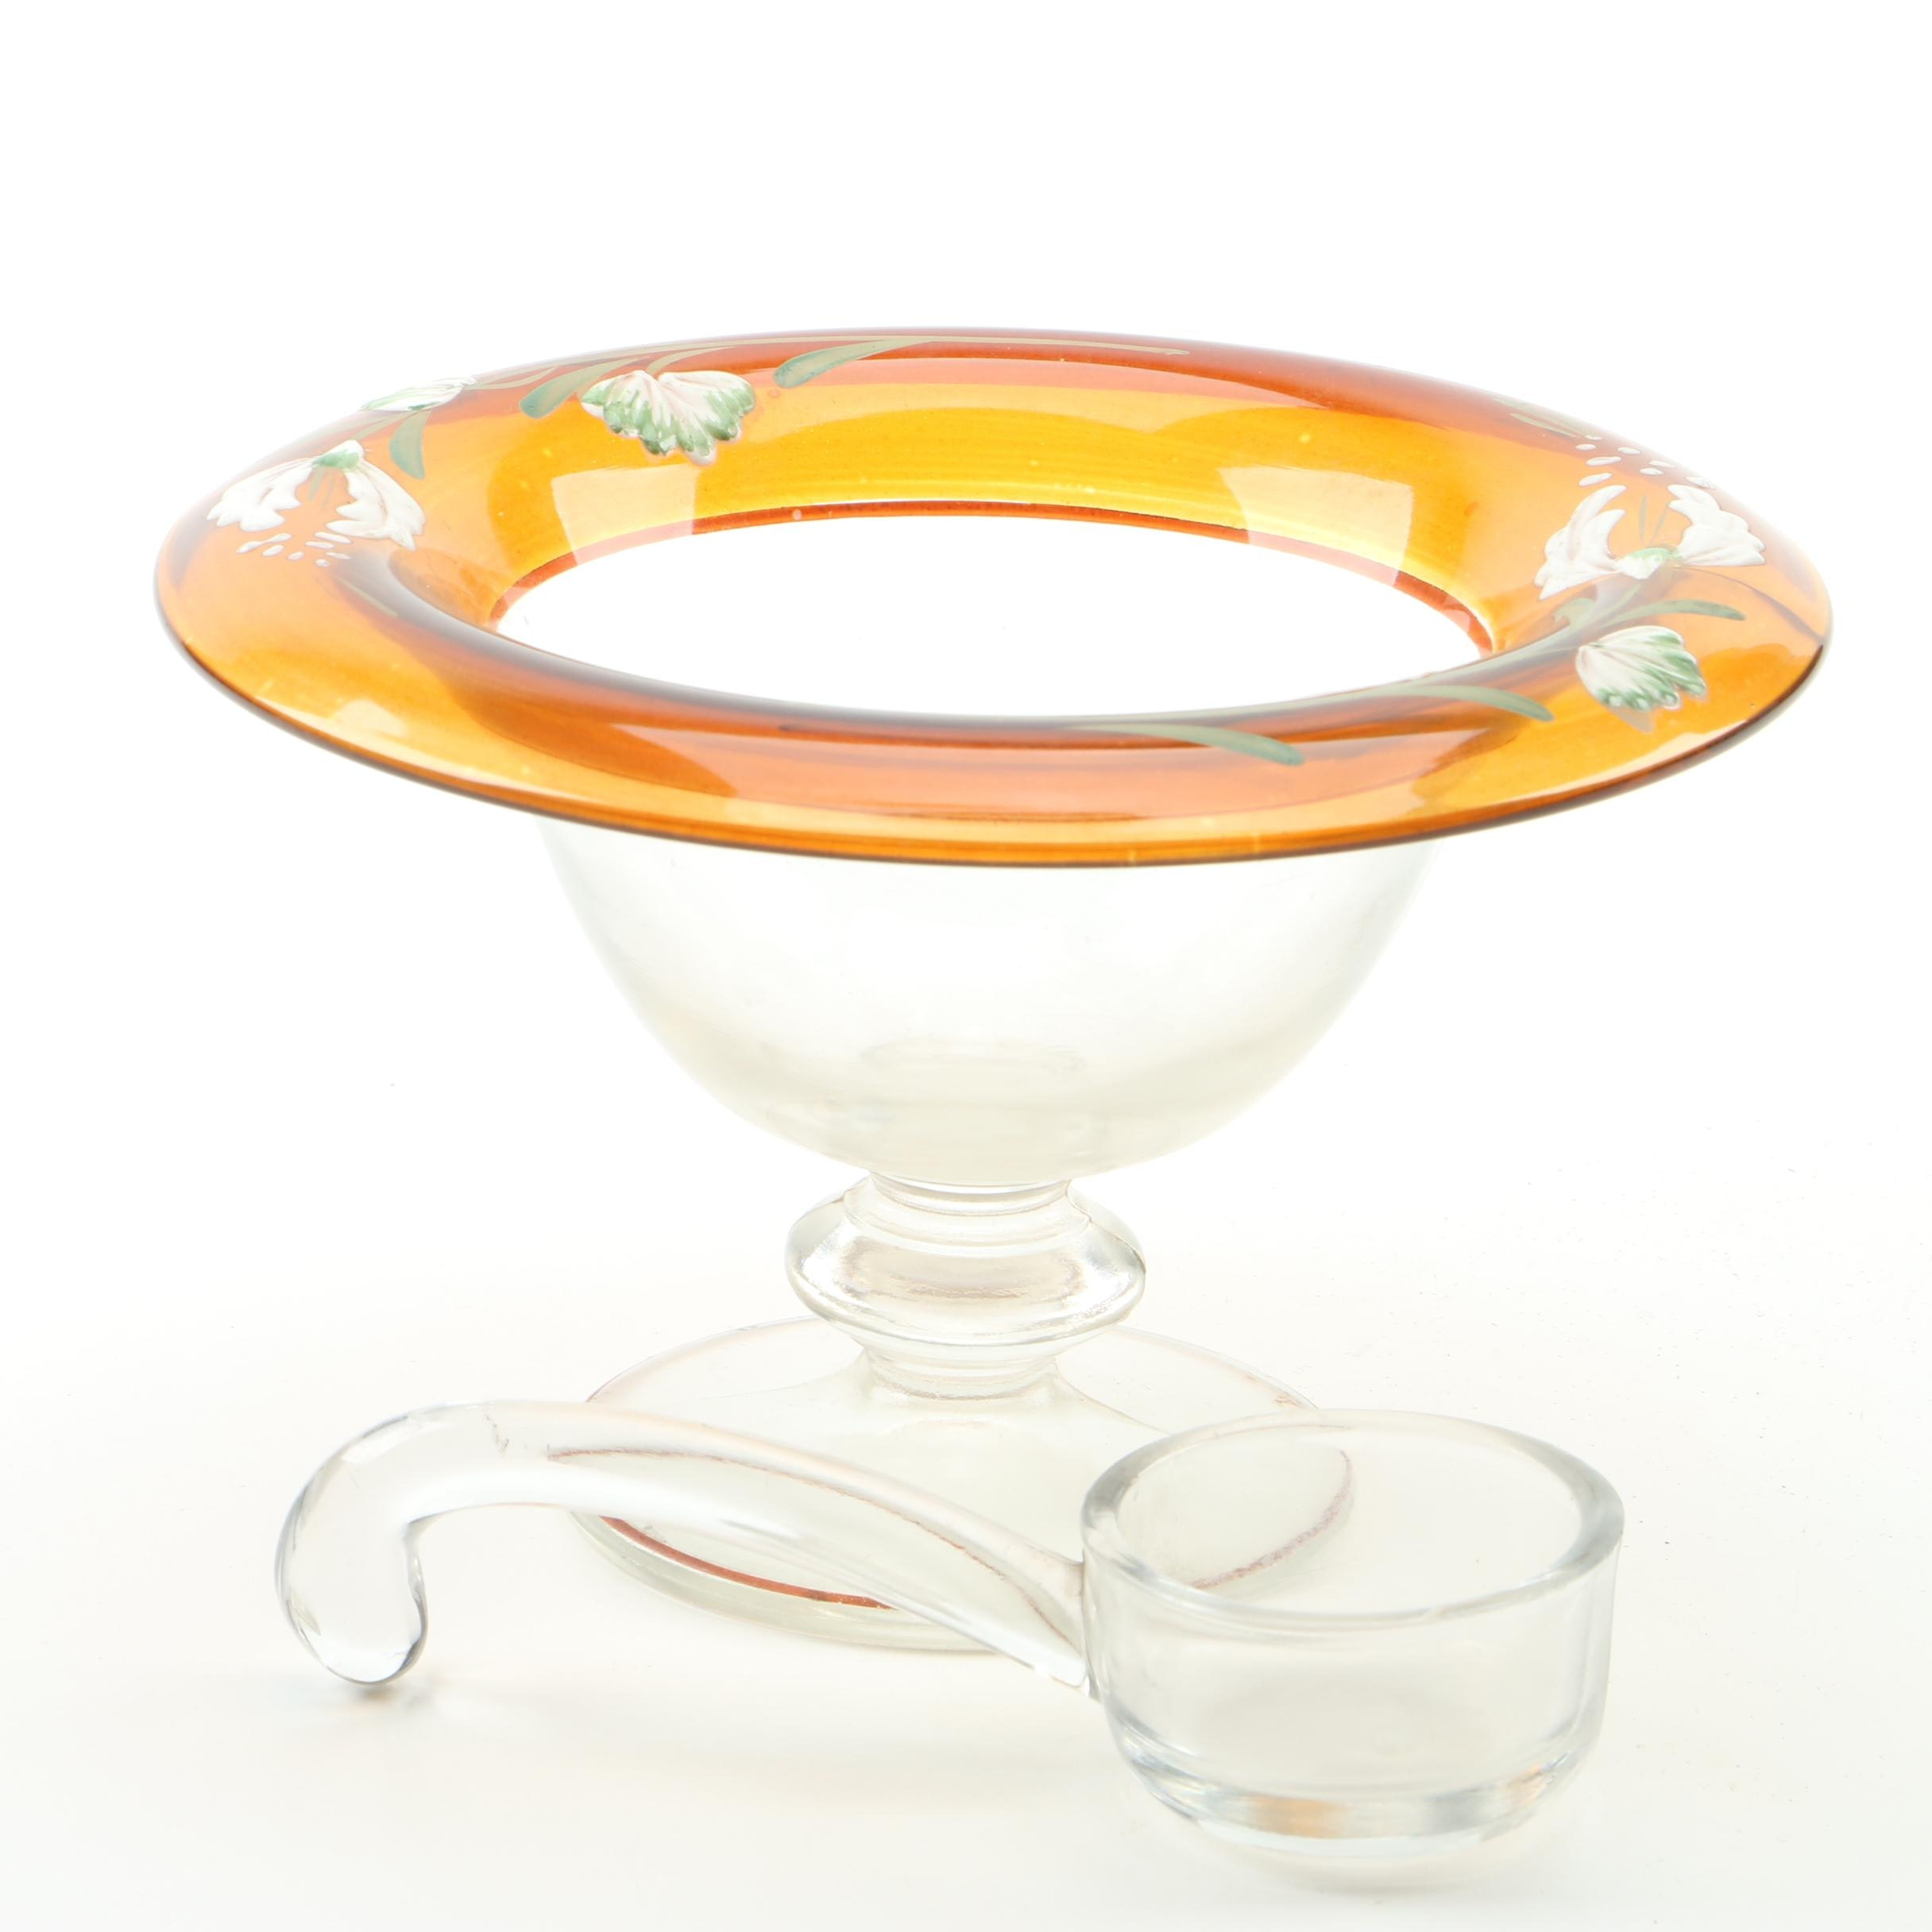 Vintage Painted Glass Mayonnaise Bowl and Ladle